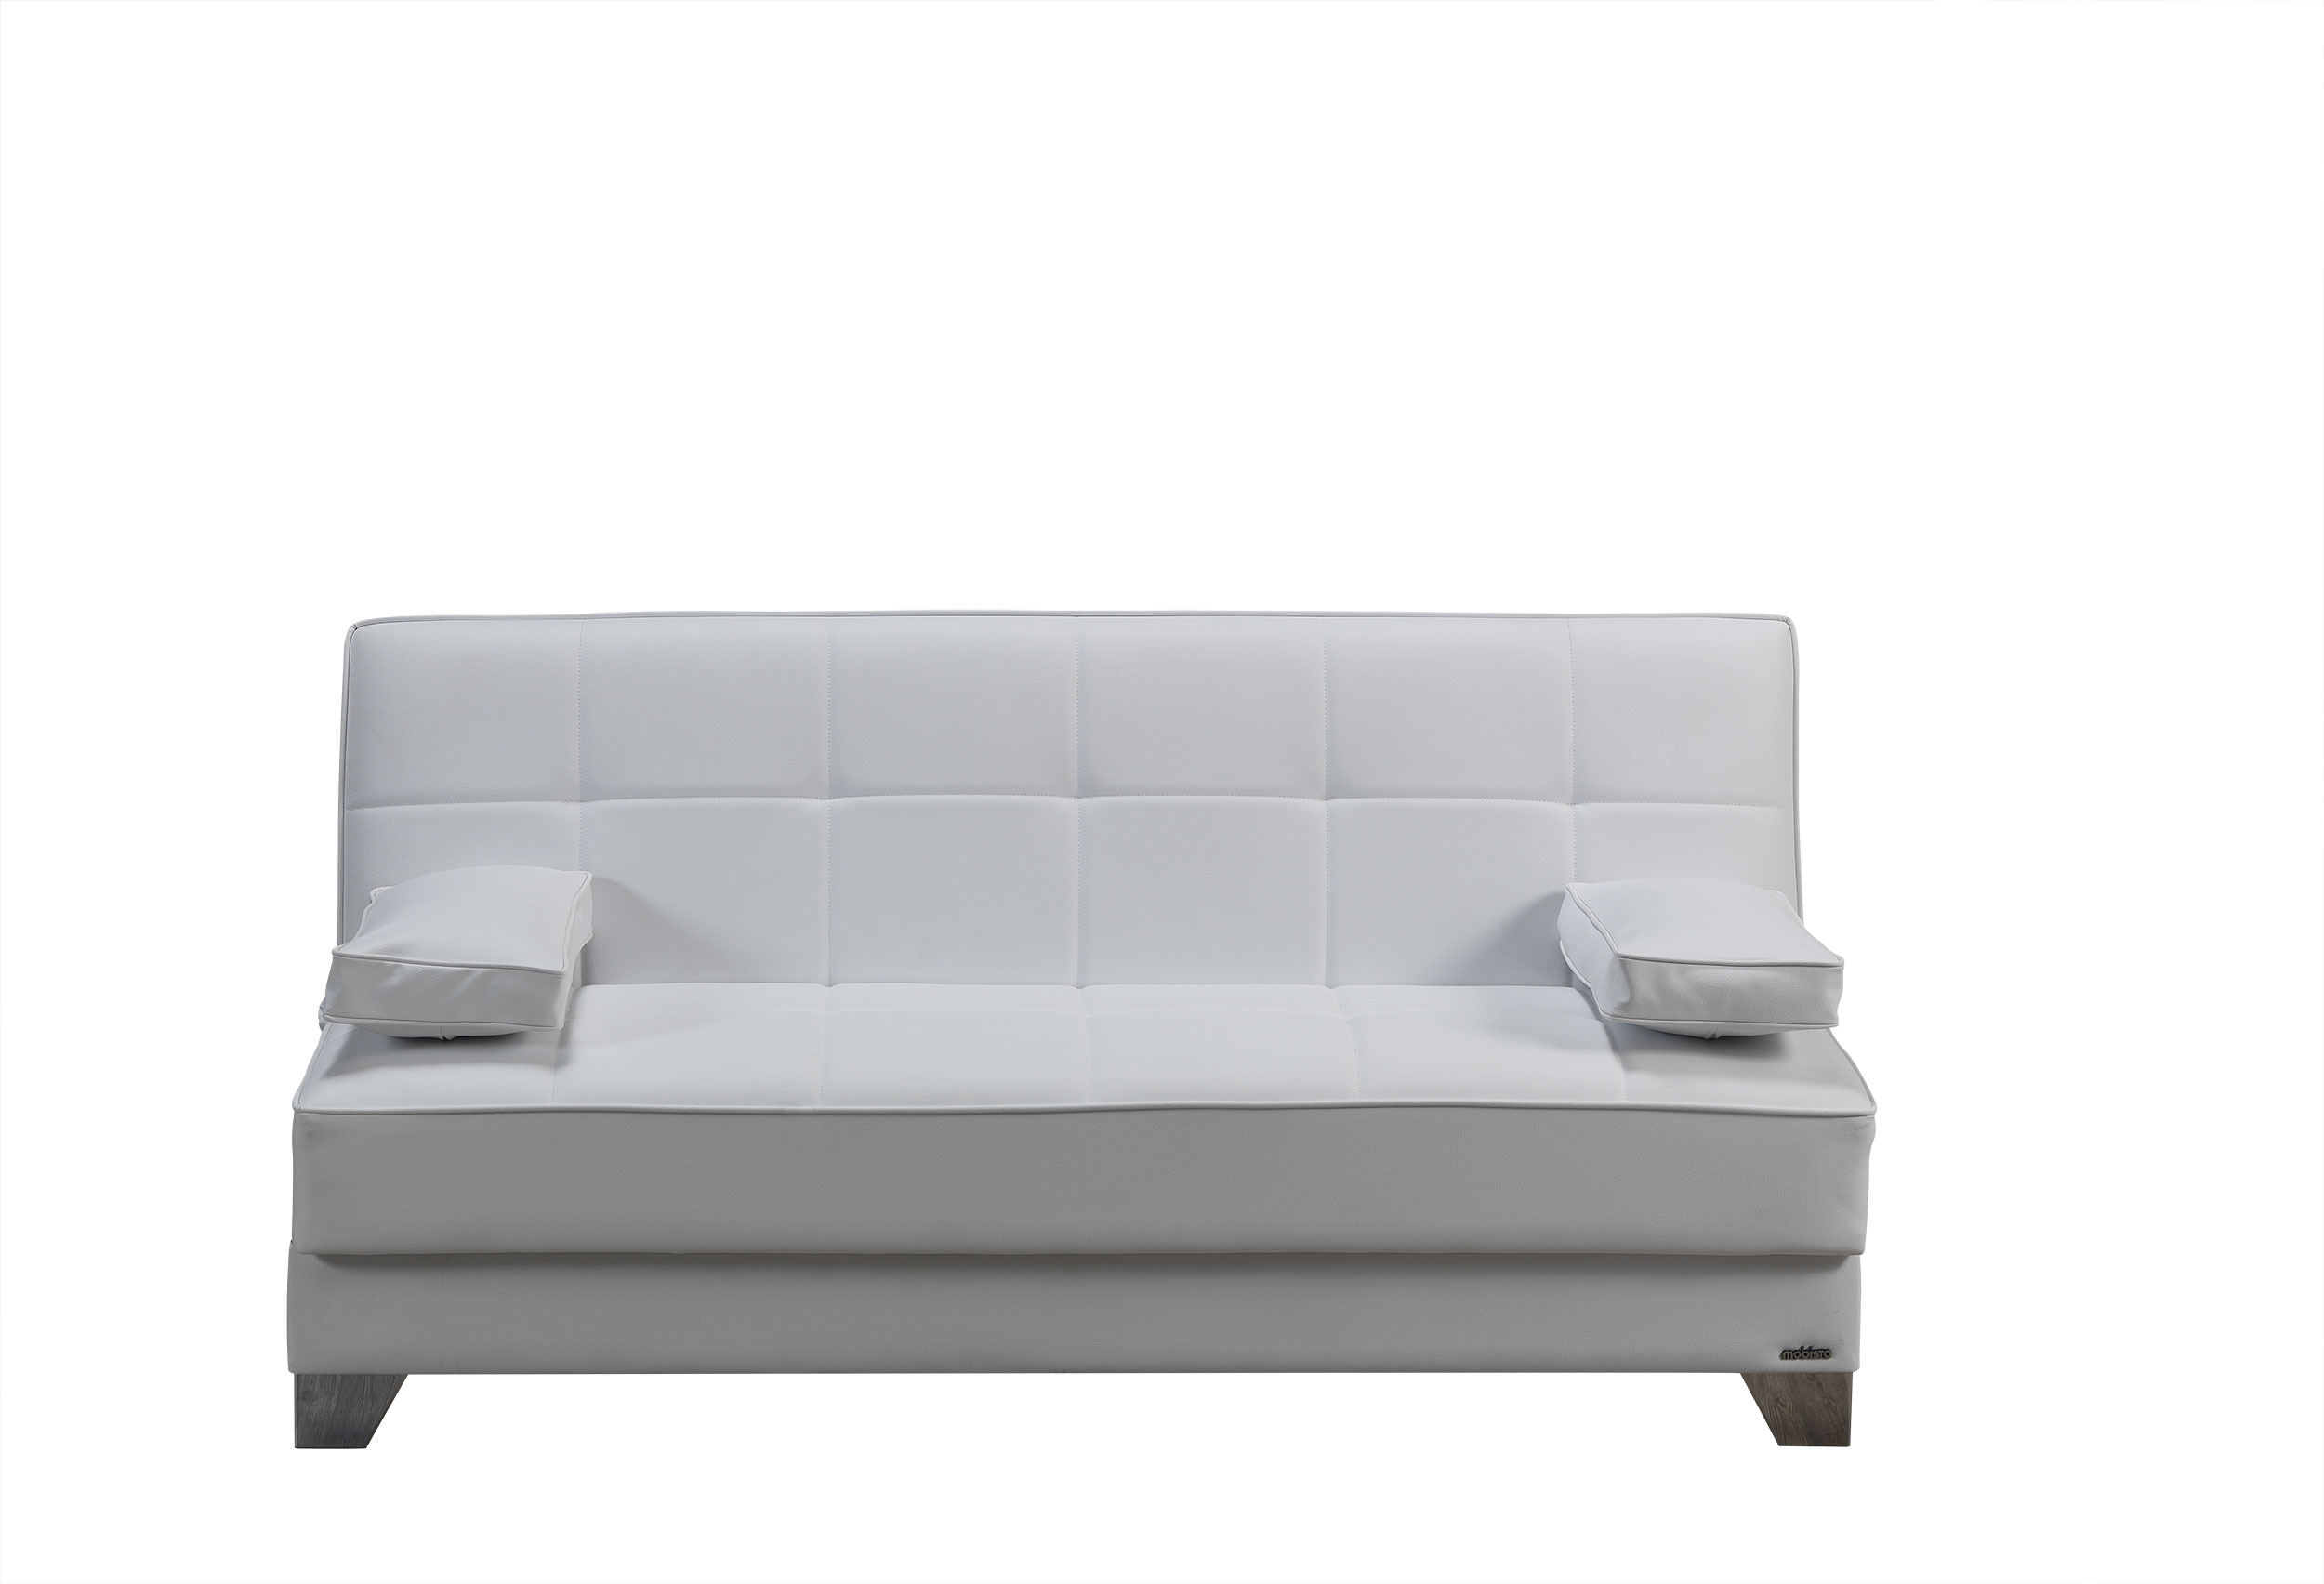 Amazing Tribeca Nyc Prestige White Sofa Bed By Mobista Onthecornerstone Fun Painted Chair Ideas Images Onthecornerstoneorg